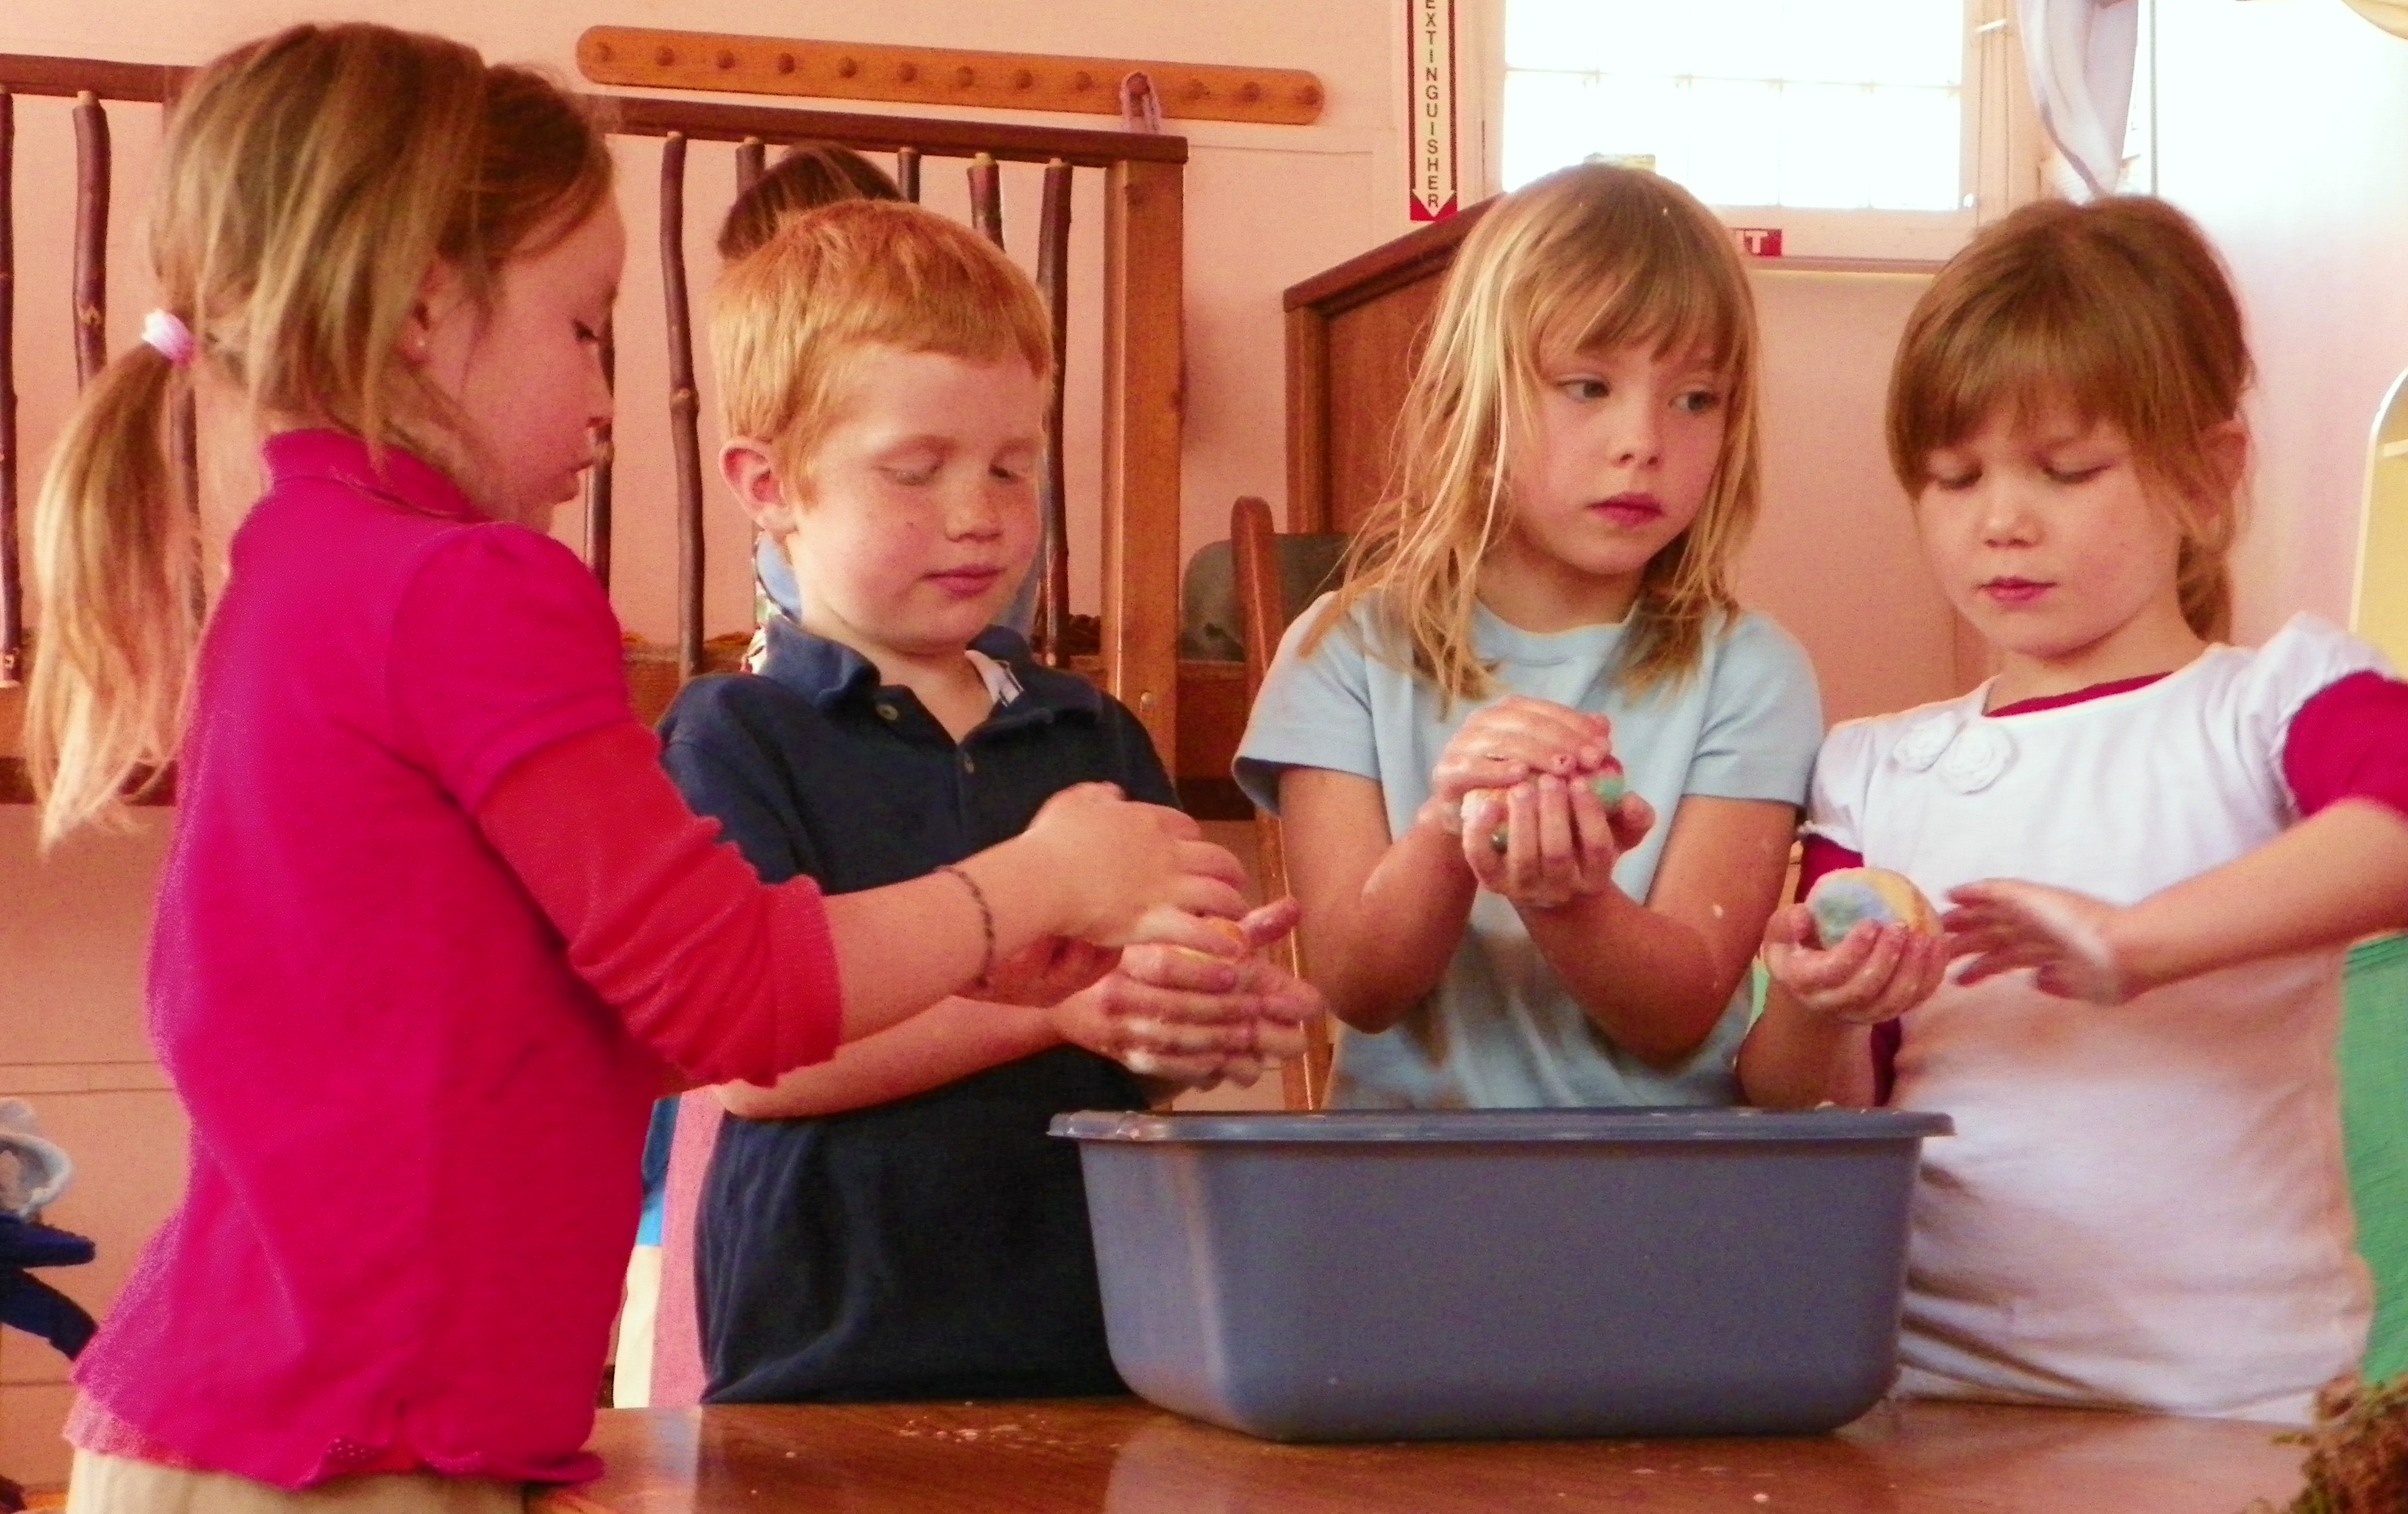 Kindergarteners washing hands before a meal together.